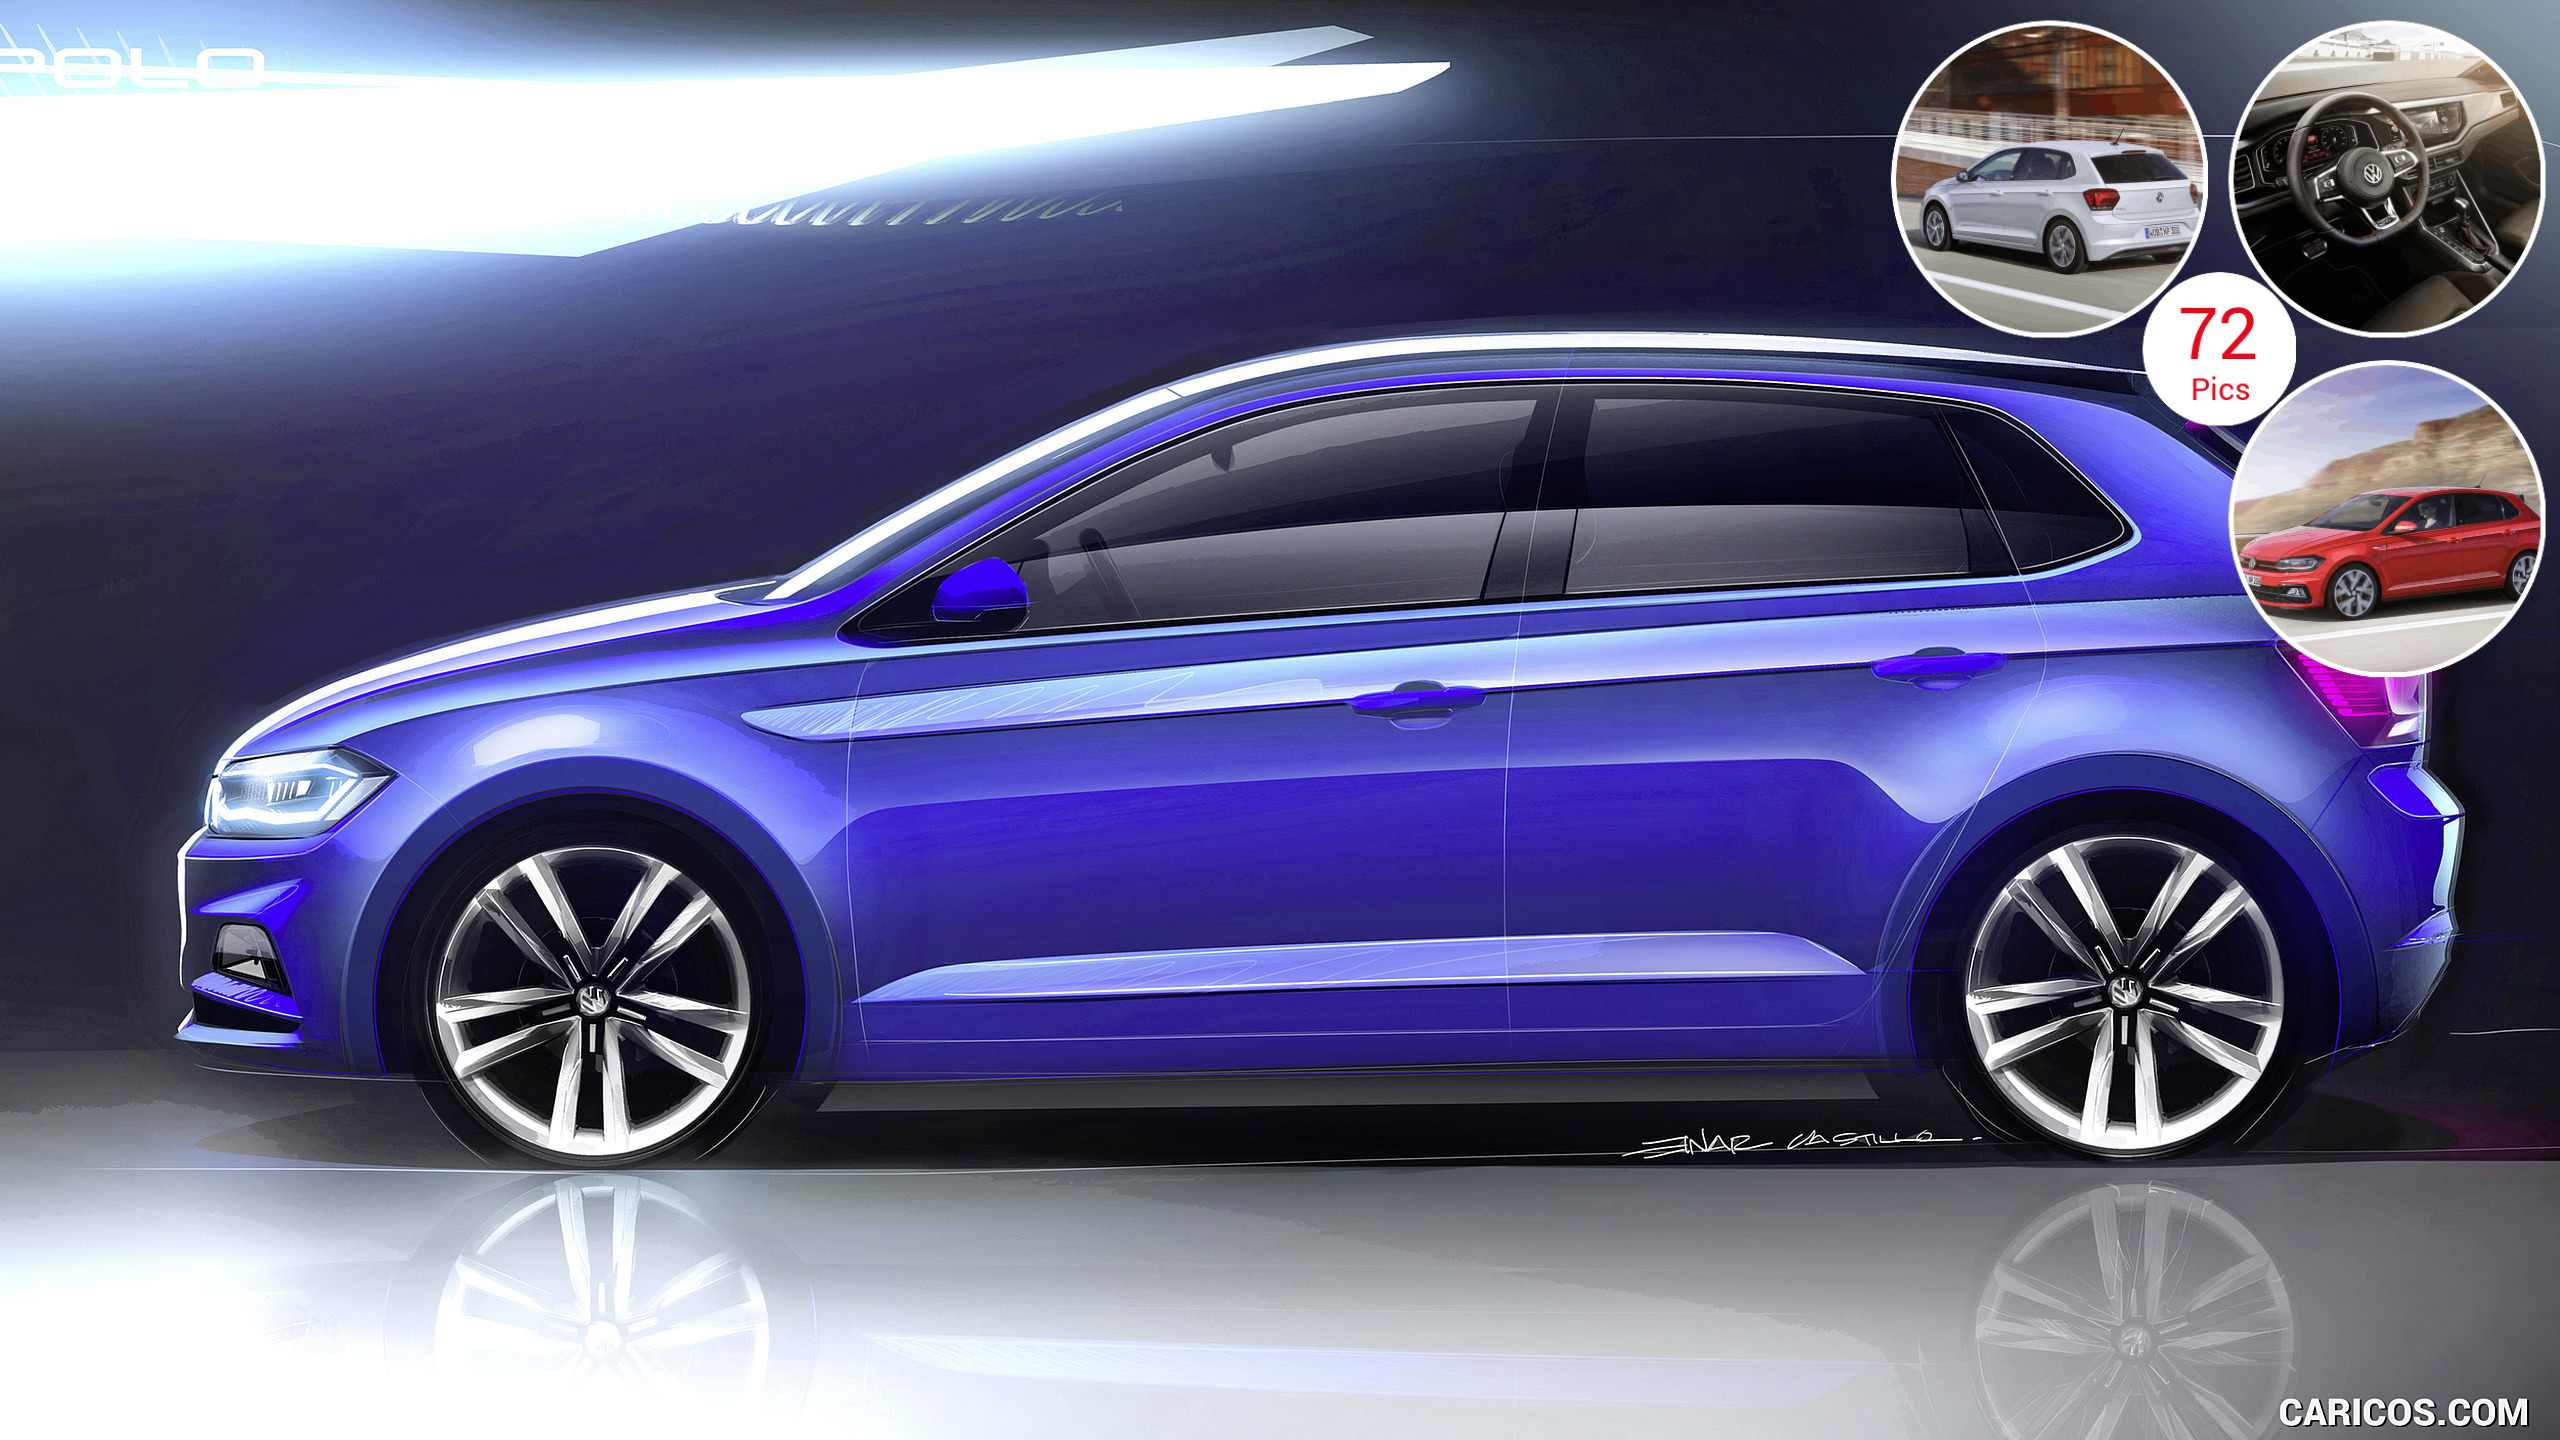 2018 Volkswagen Polo - Design Sketch | HD Wallpaper #62